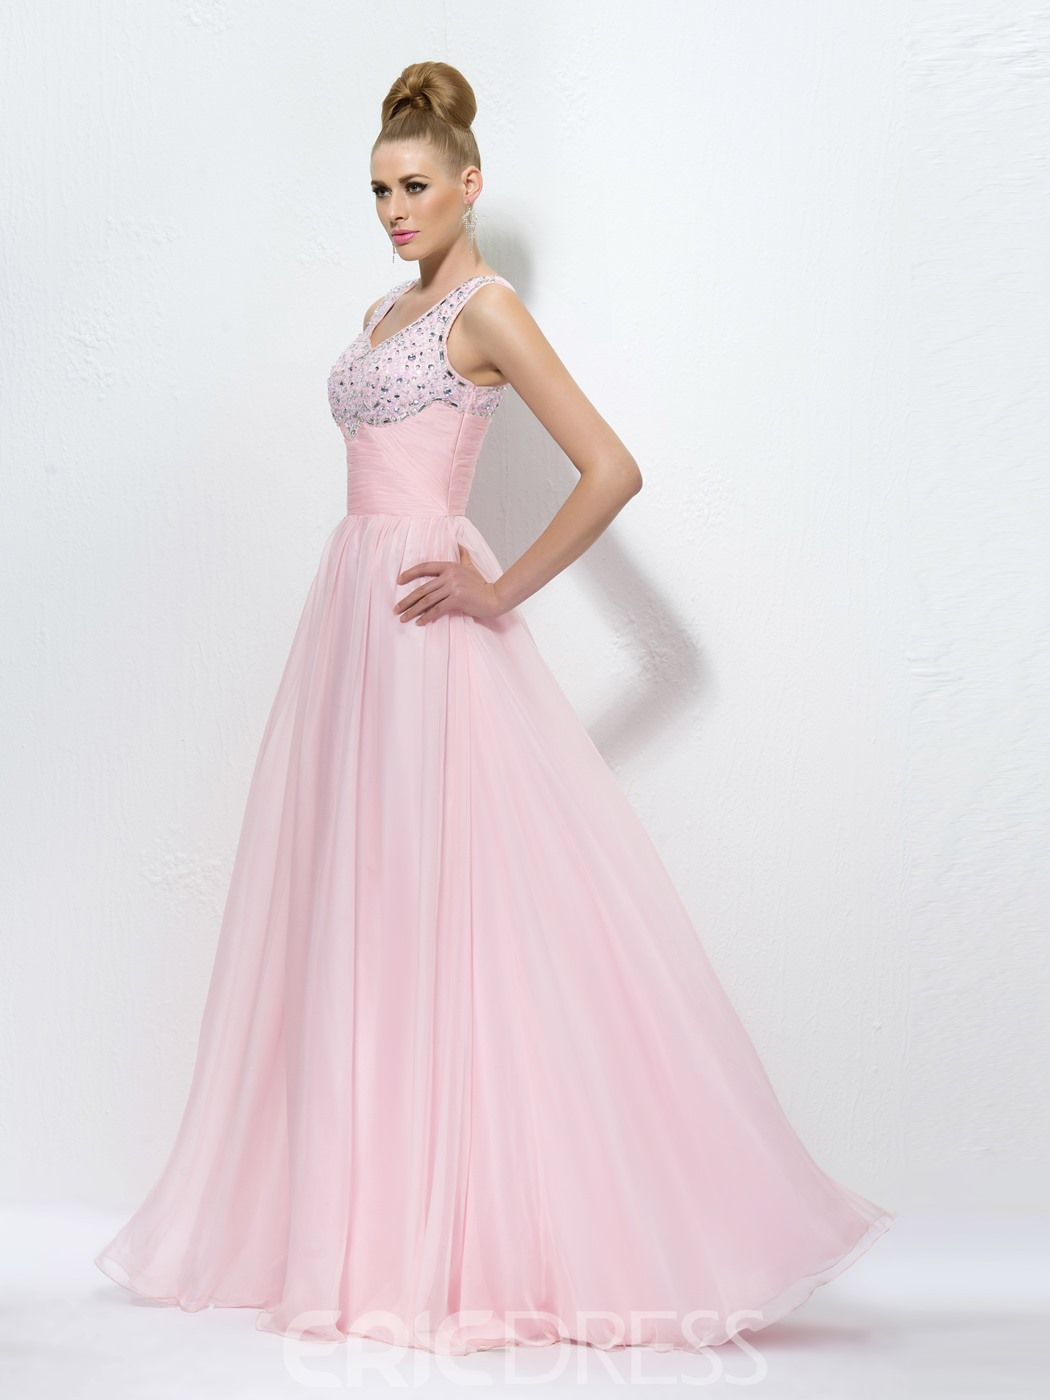 Dramatic Straps Beading V-Neck Zipper-Up A-Line Floor Length Prom Dress ed Independently